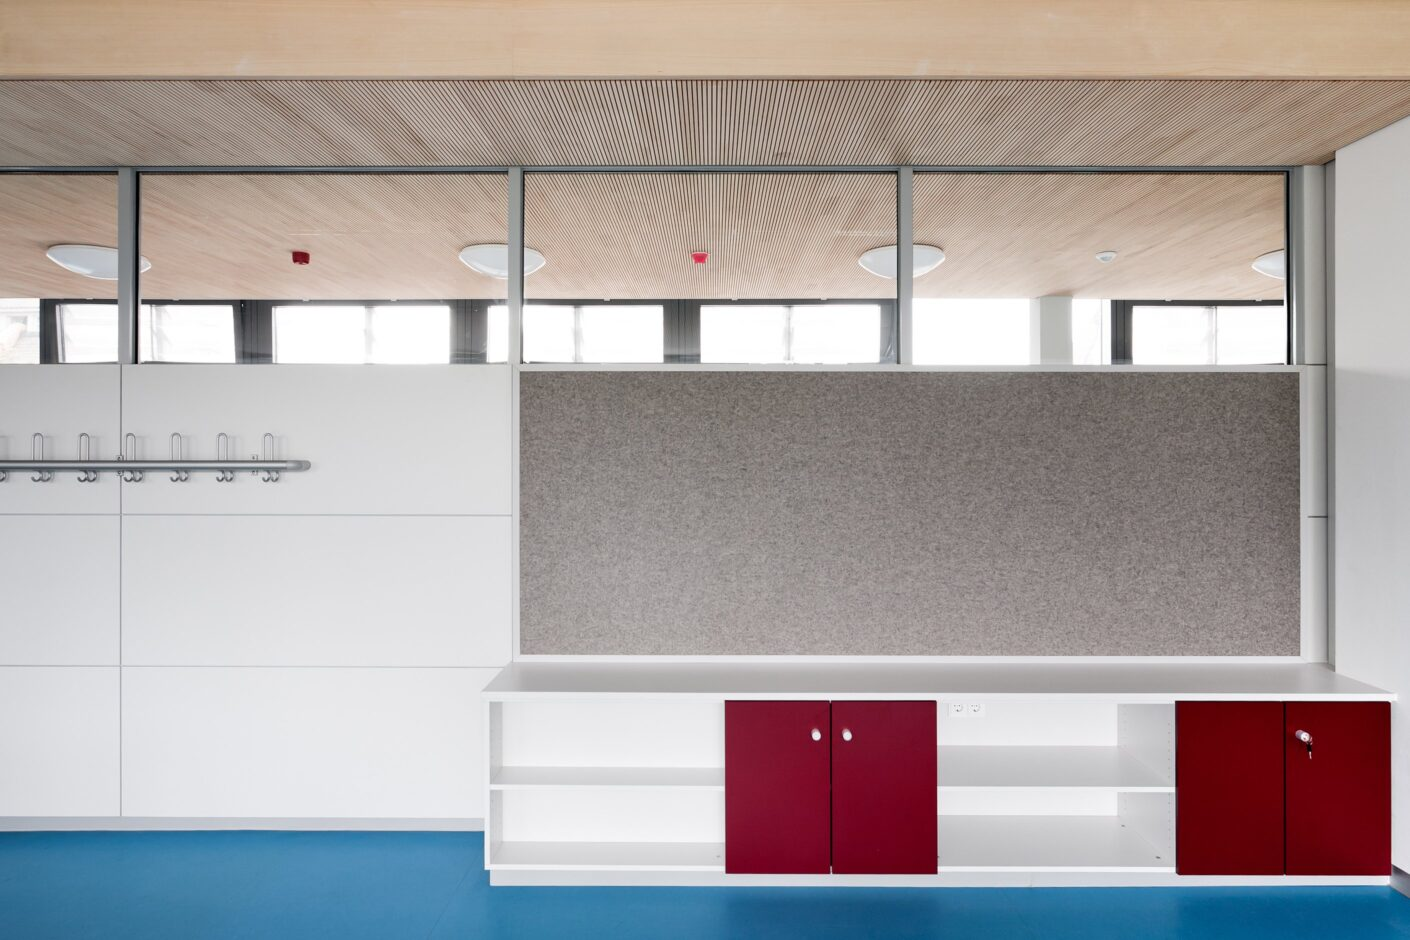 fecopur│feco partition walls│Markgrafenschool Emmendingen